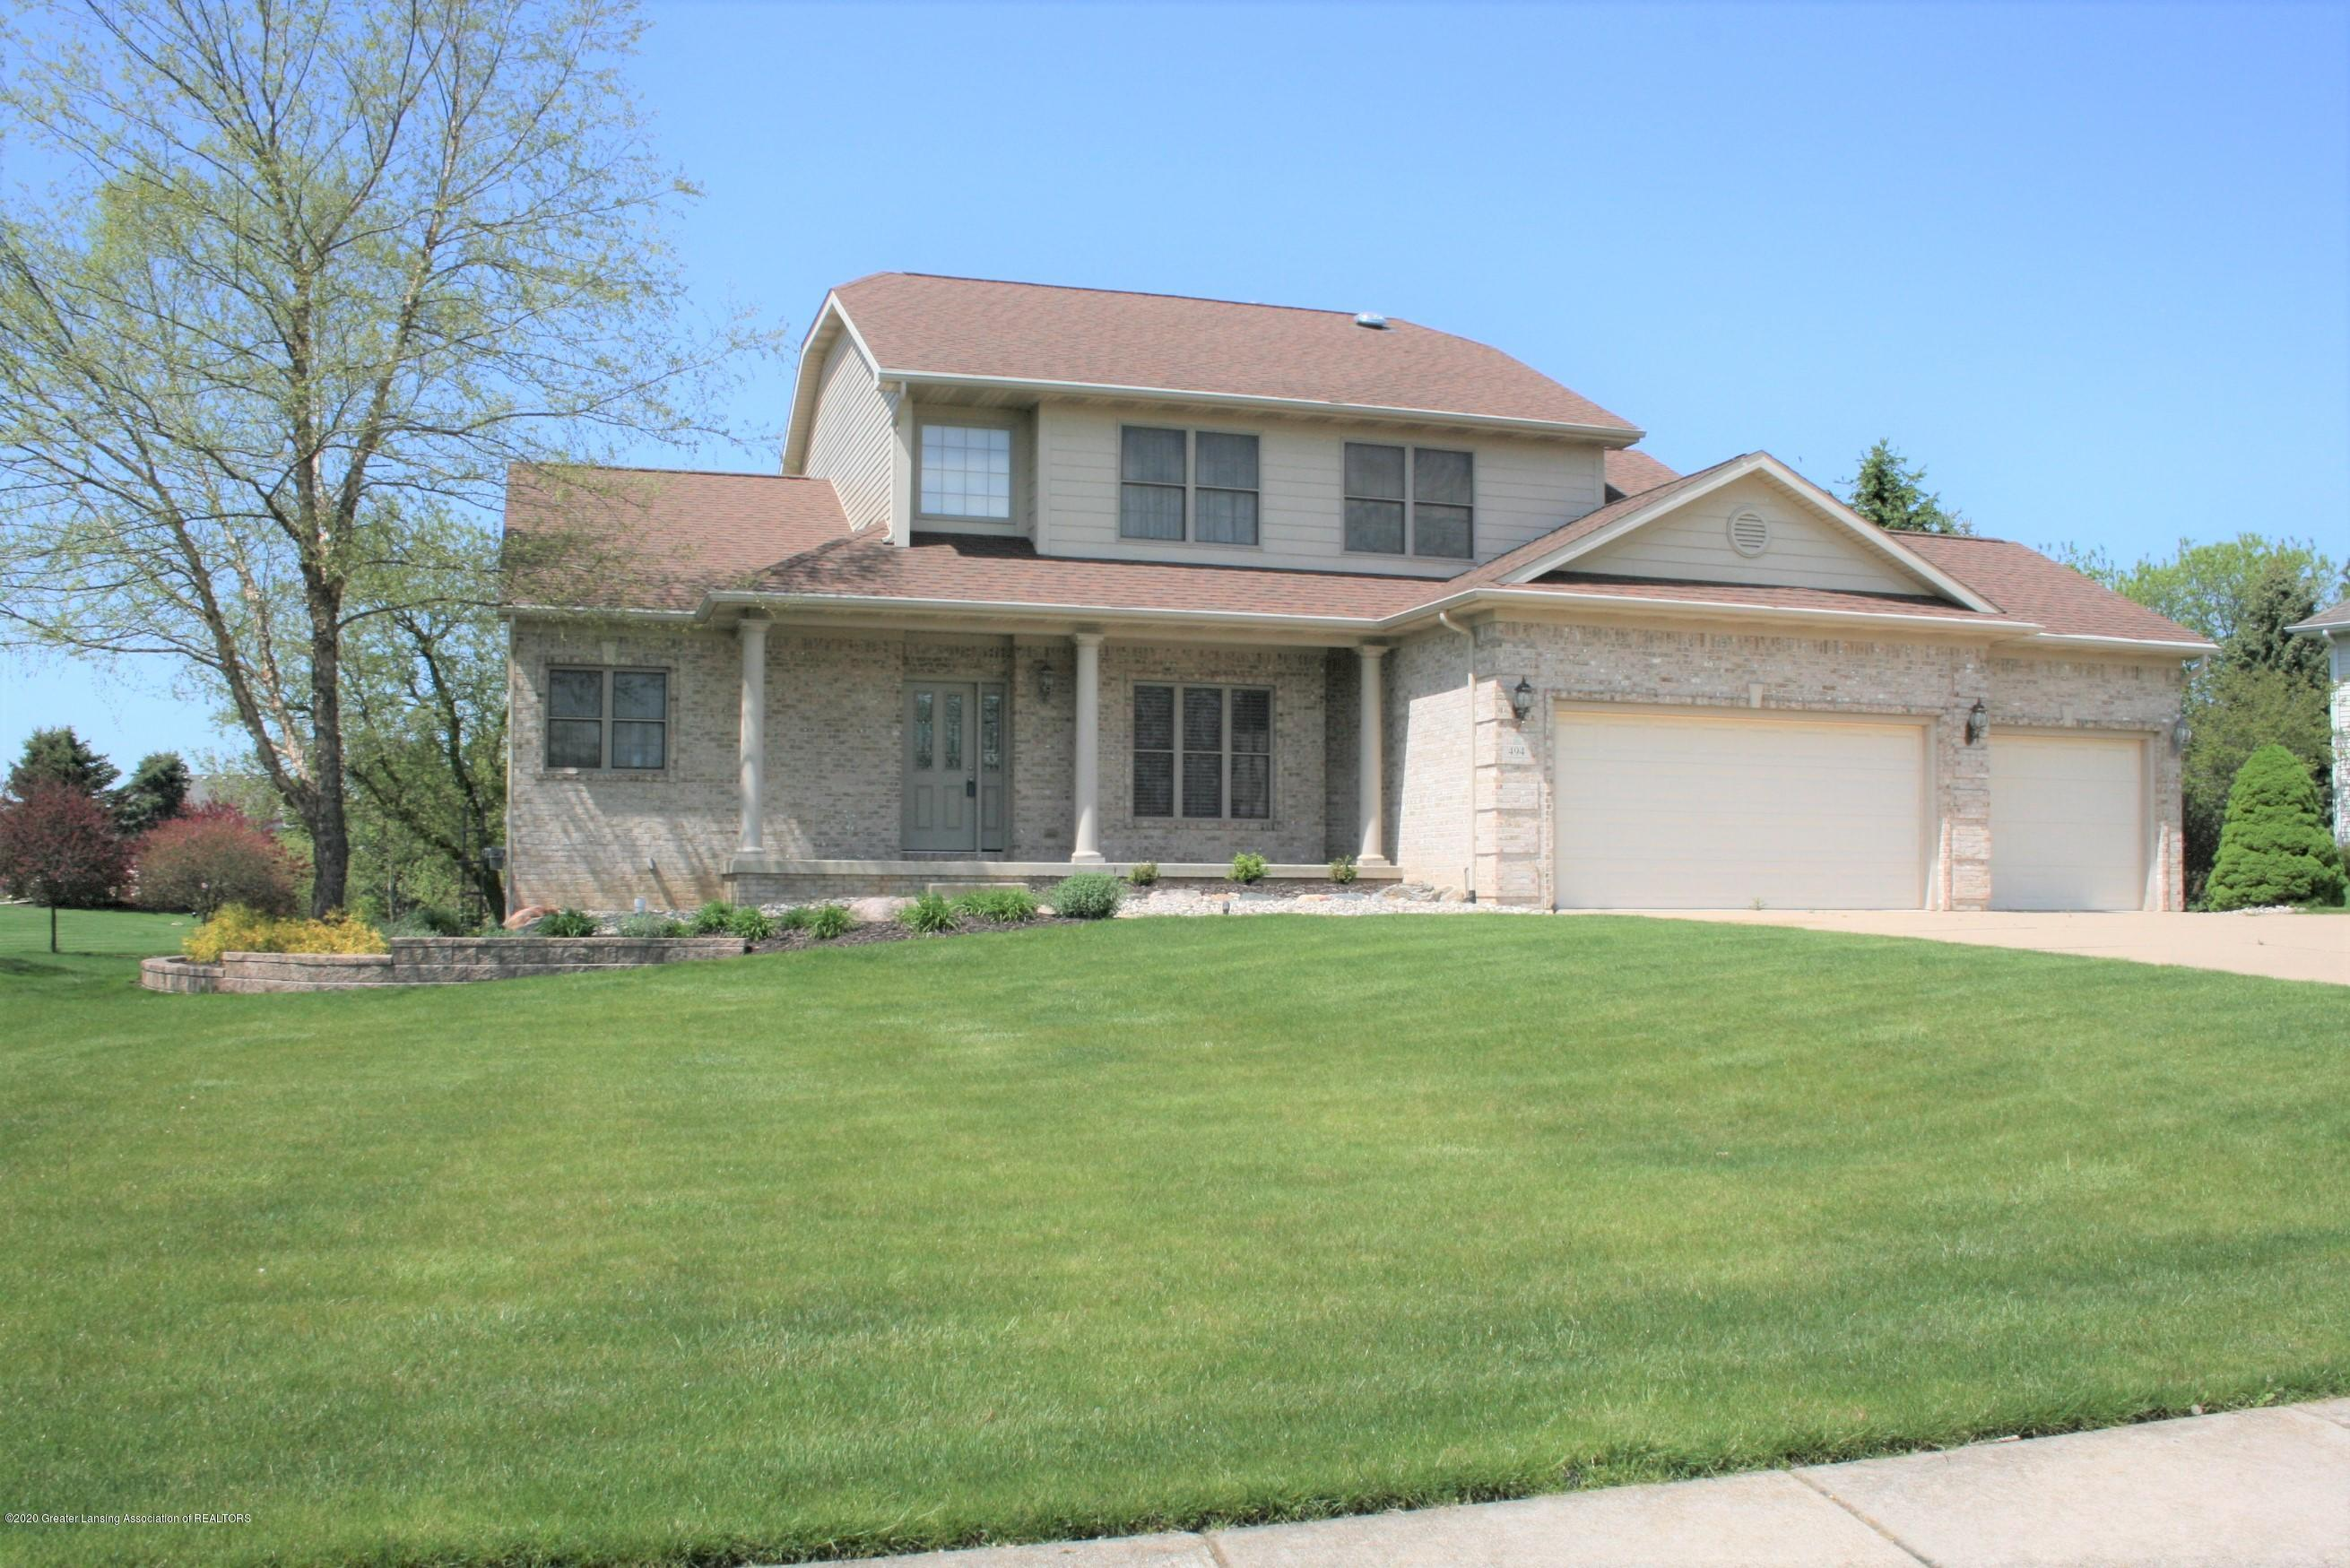 494 Riverwalk Dr - Welcome home - 1